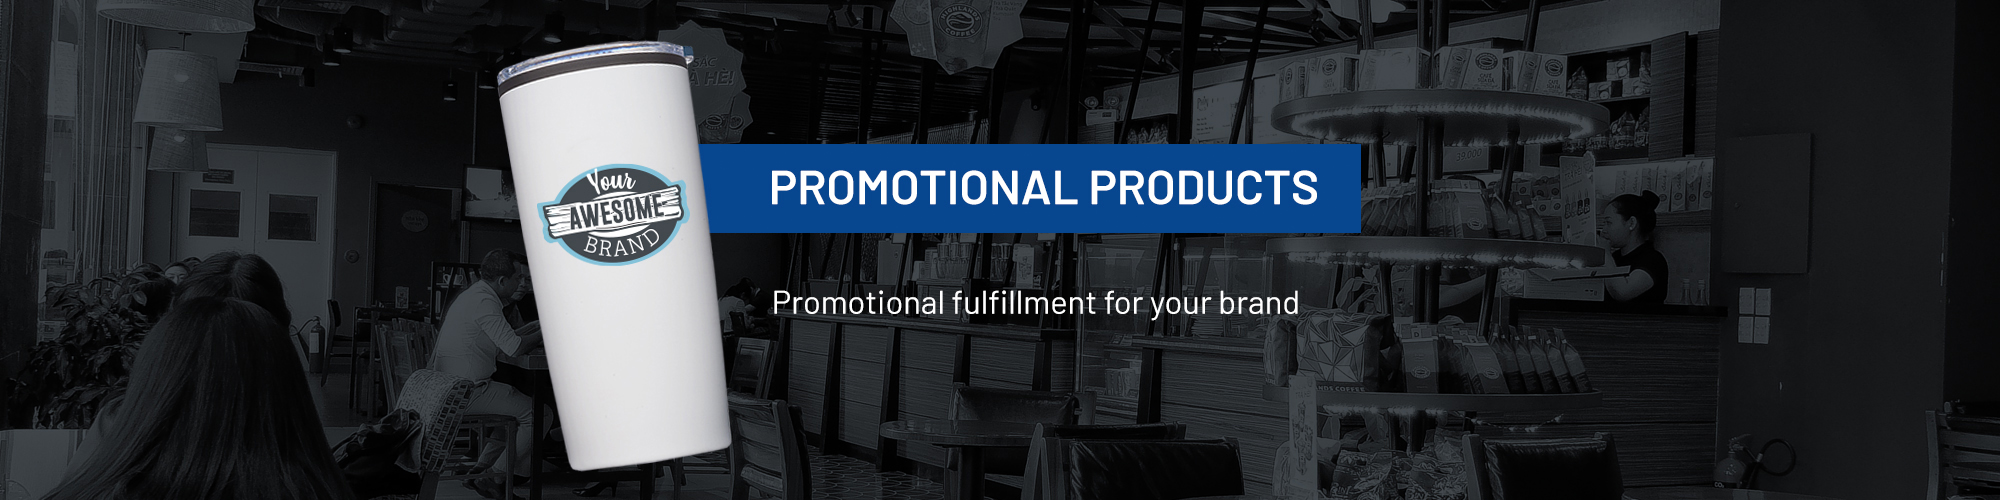 Promotional Products Fulfillment Services Banner